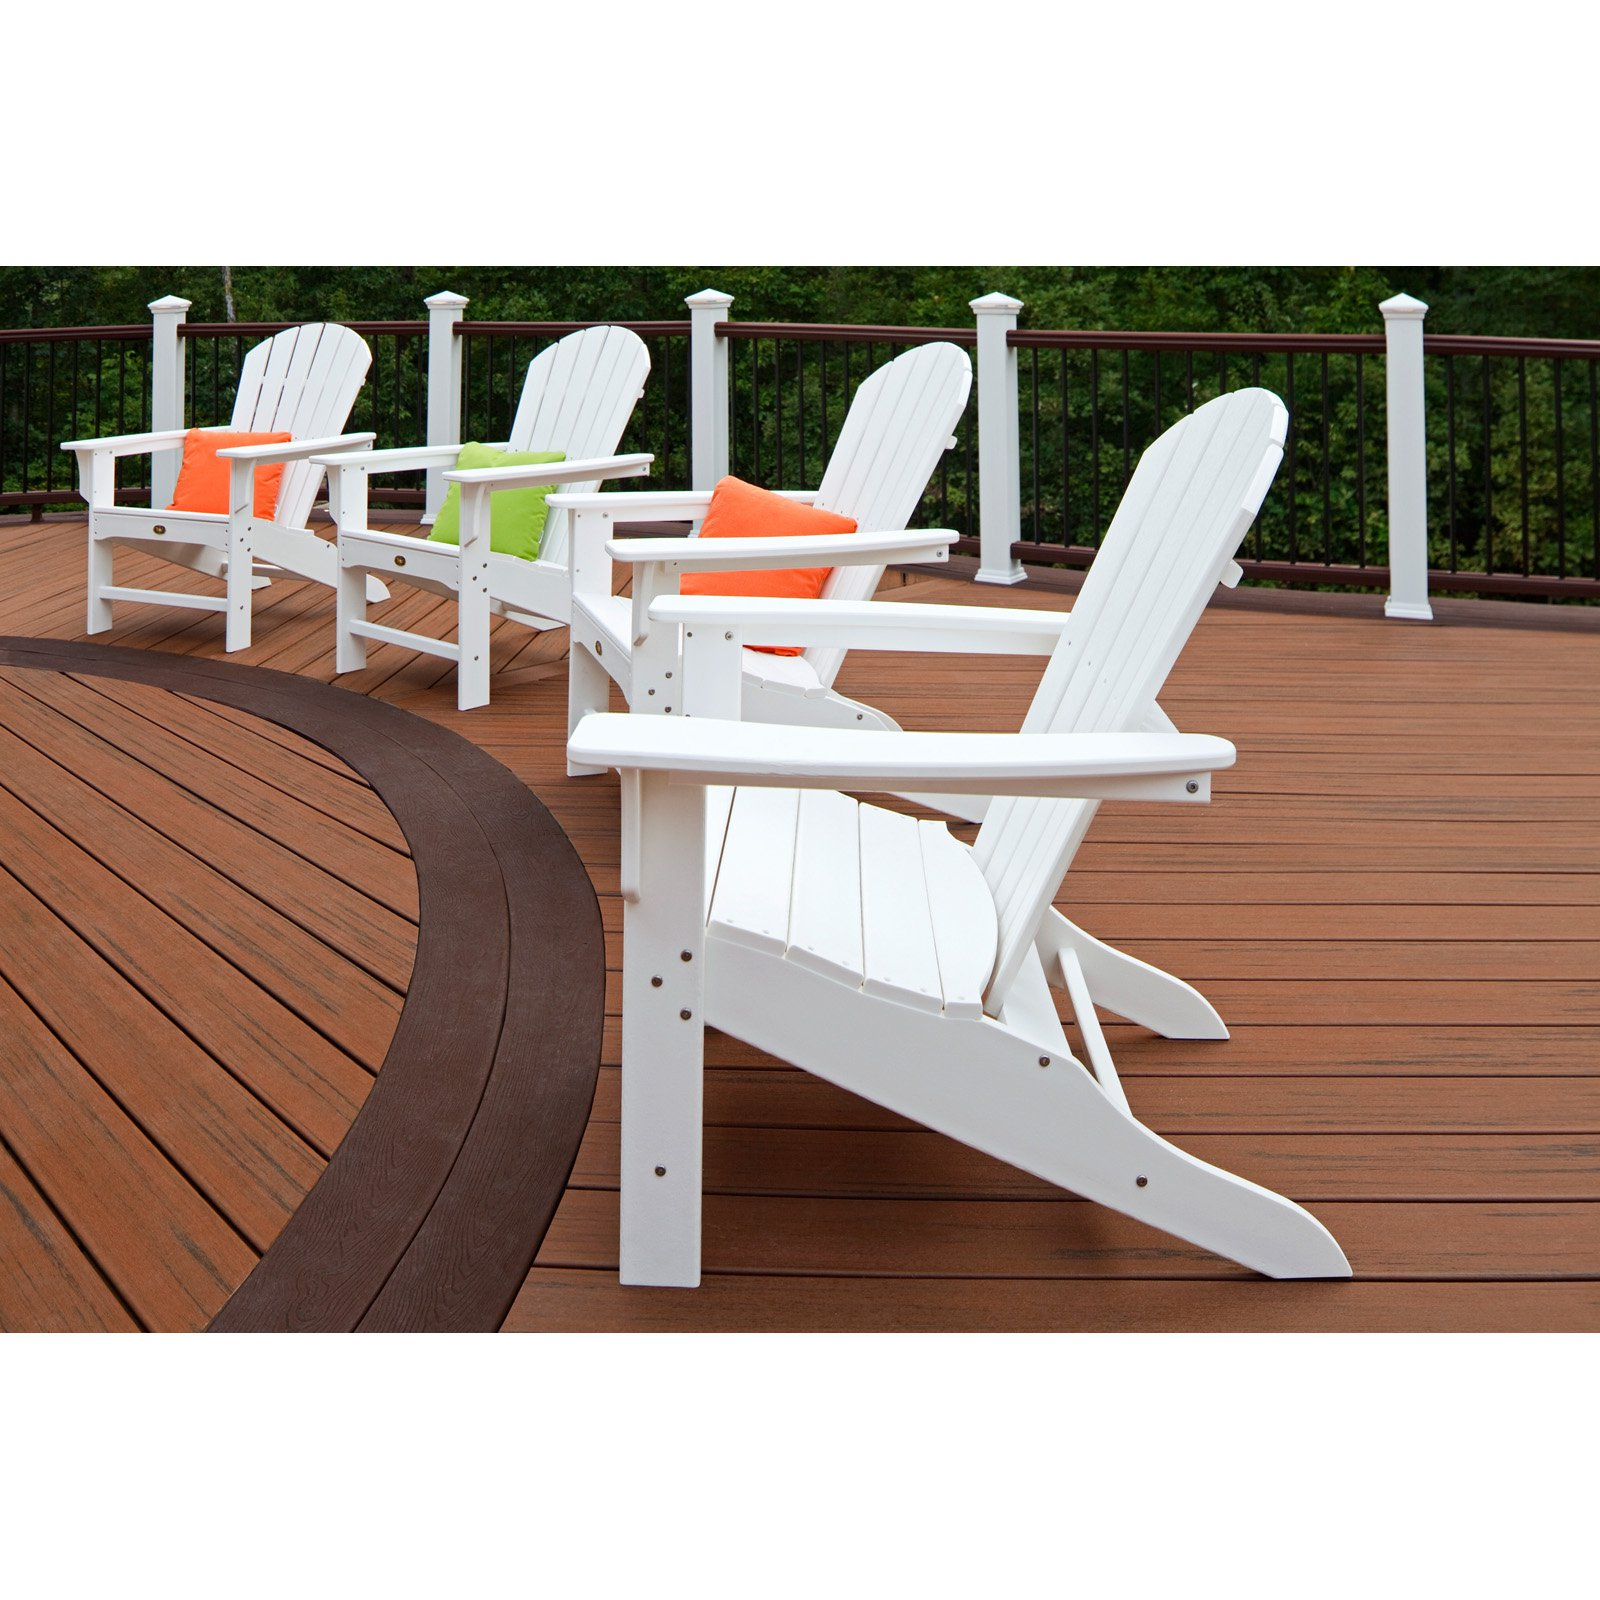 Trex Outdoor Furniture Recycled Plastic Cape Cod Adirondack Chair    Walmart.com